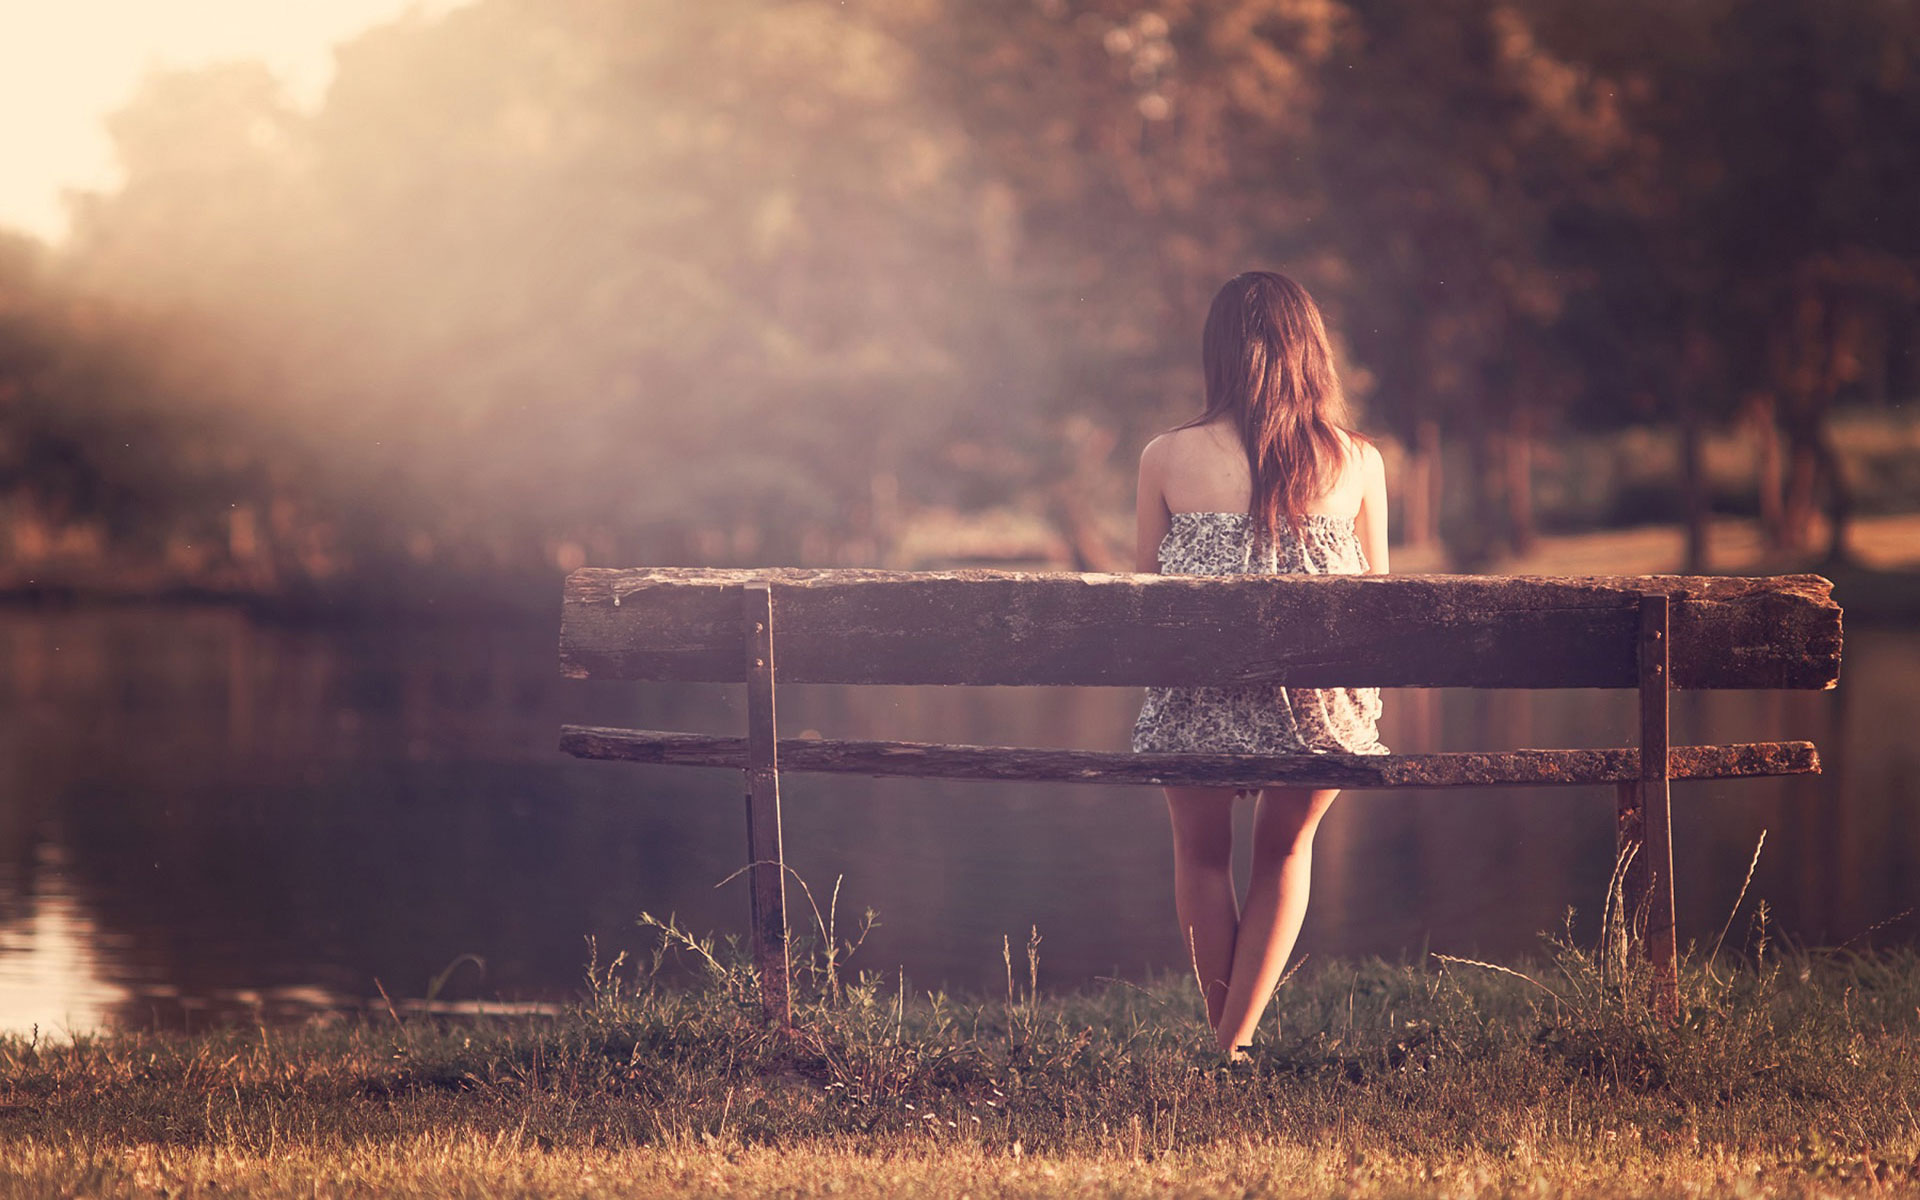 sad-lonely-girl-sitting-on-bench-in-a-park